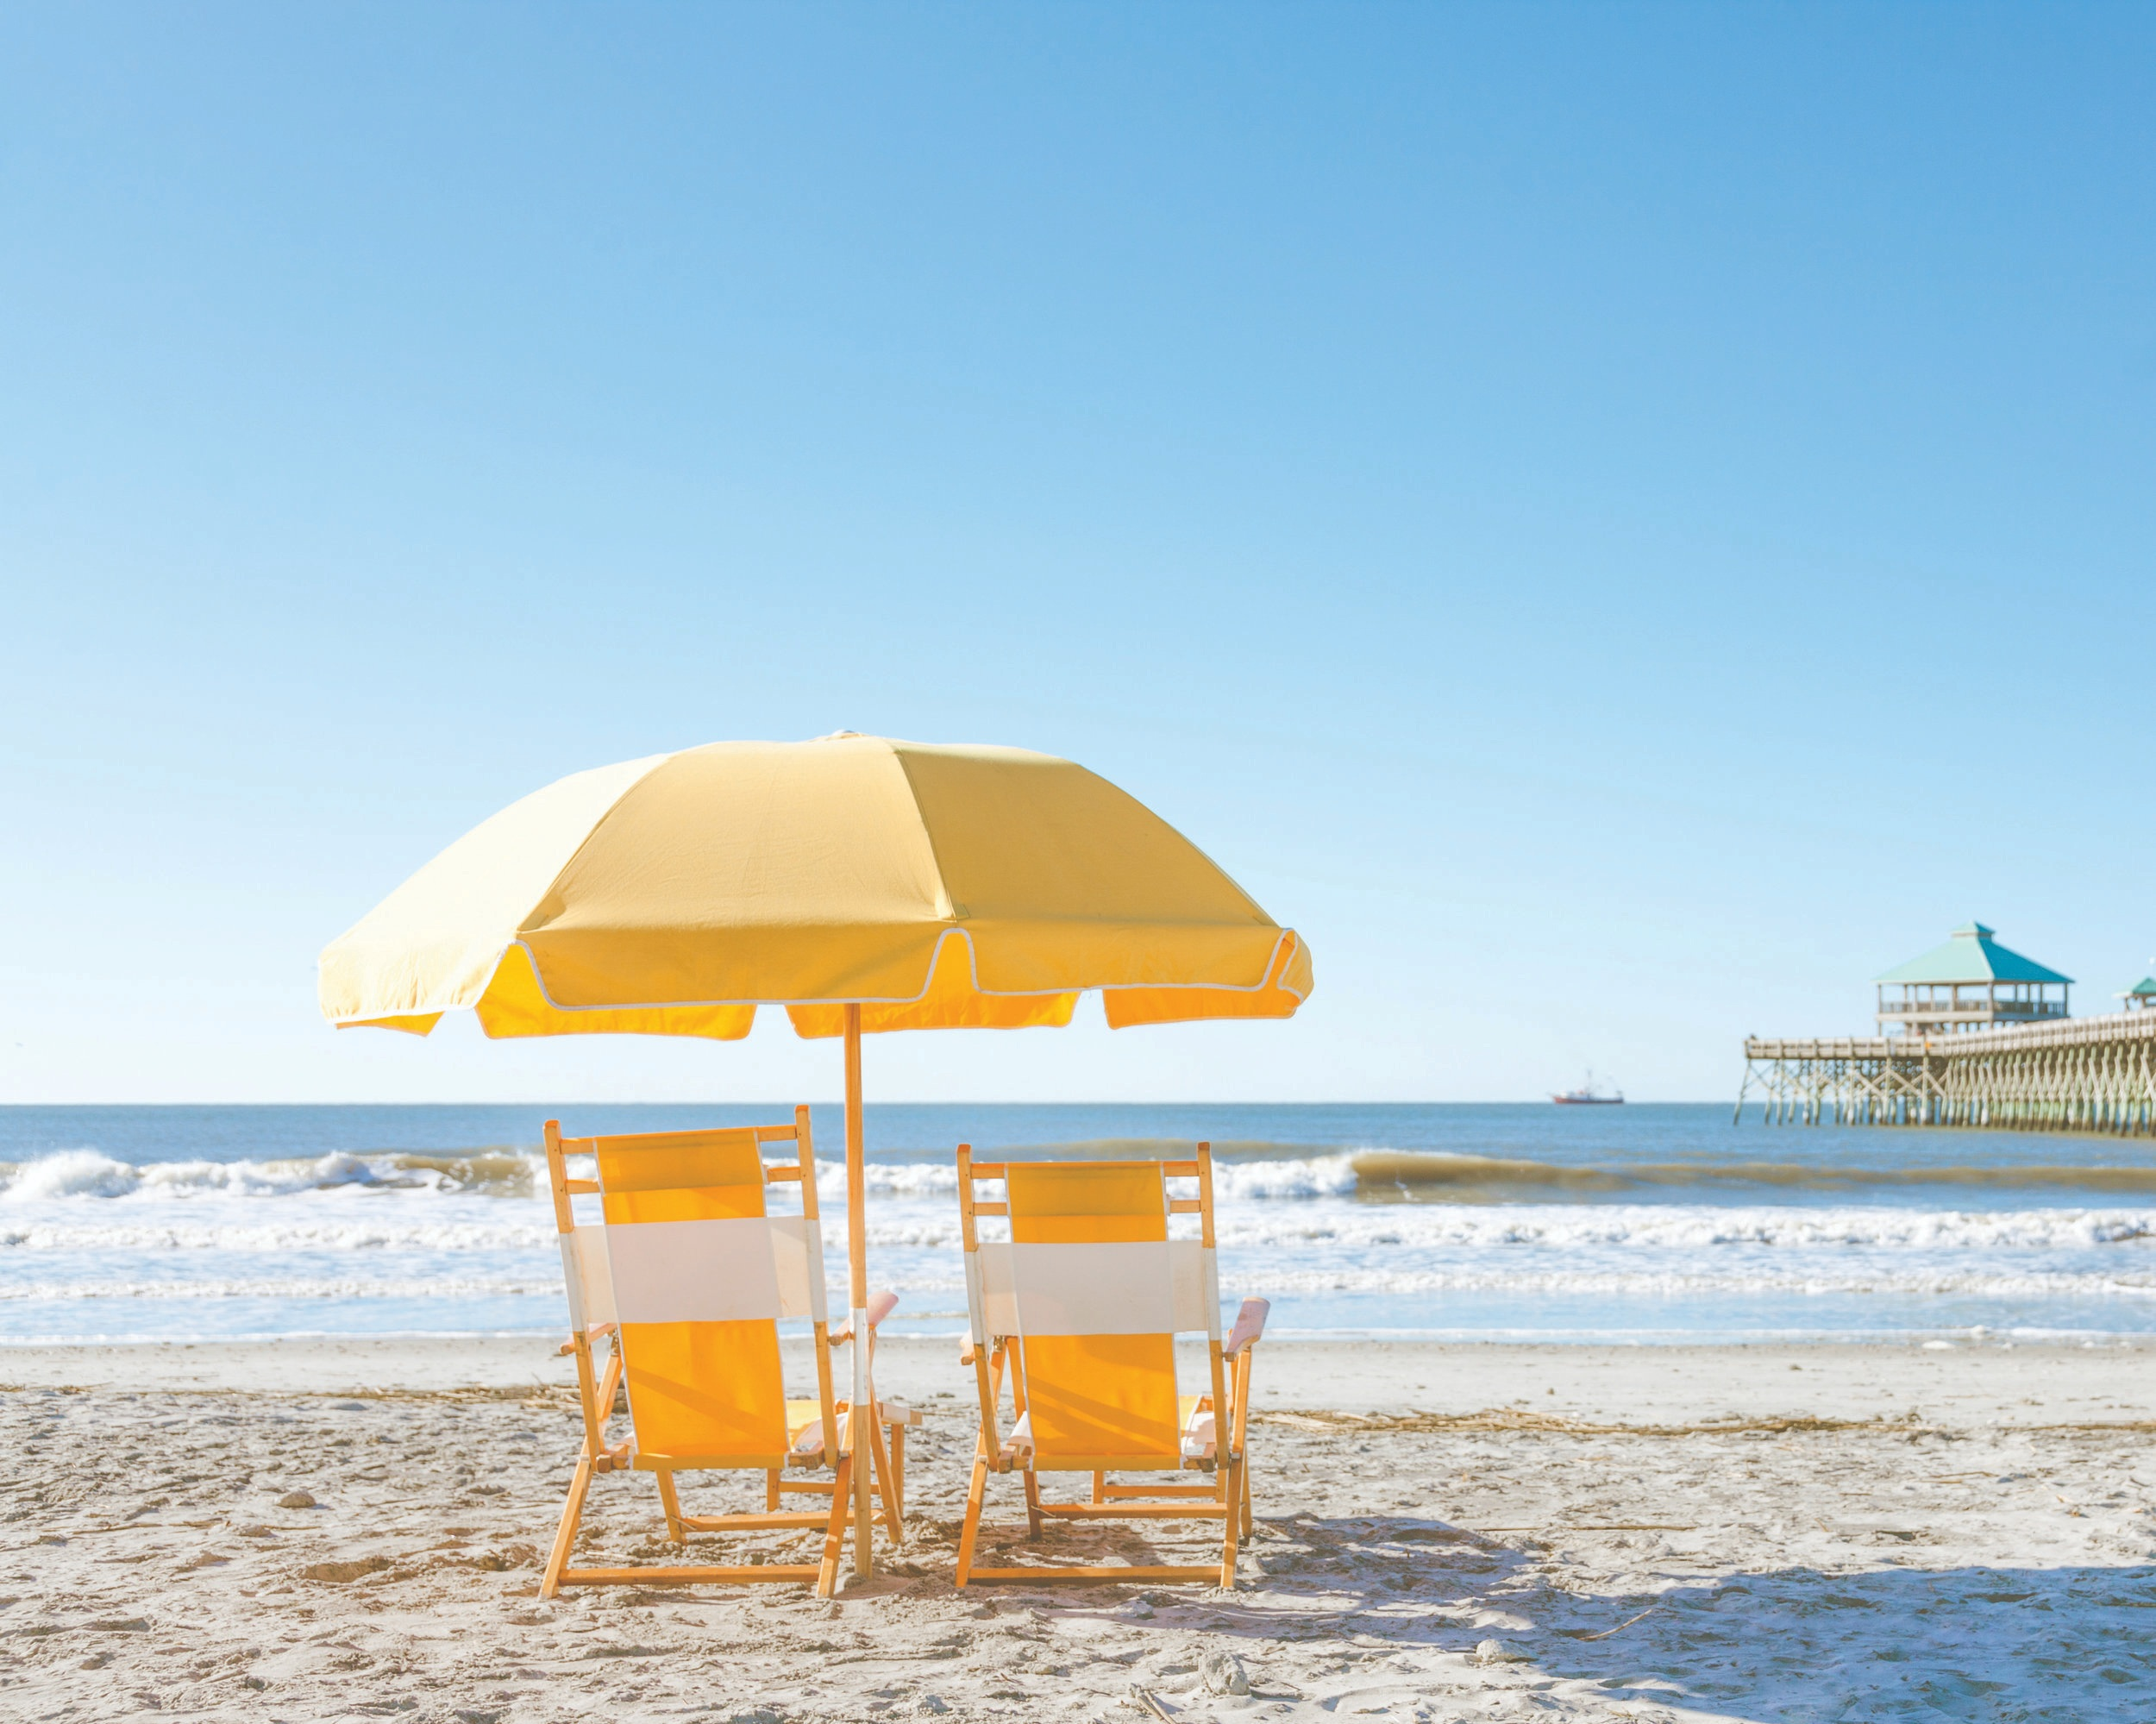 Folly Beach - Located just 15 minutes from downtown Charleston, this beautiful barrier island is a great day trip. There are beach and surfing opportunities galore, and the island itslef is home to a maritime forest and the Morris Island Lighthouse.